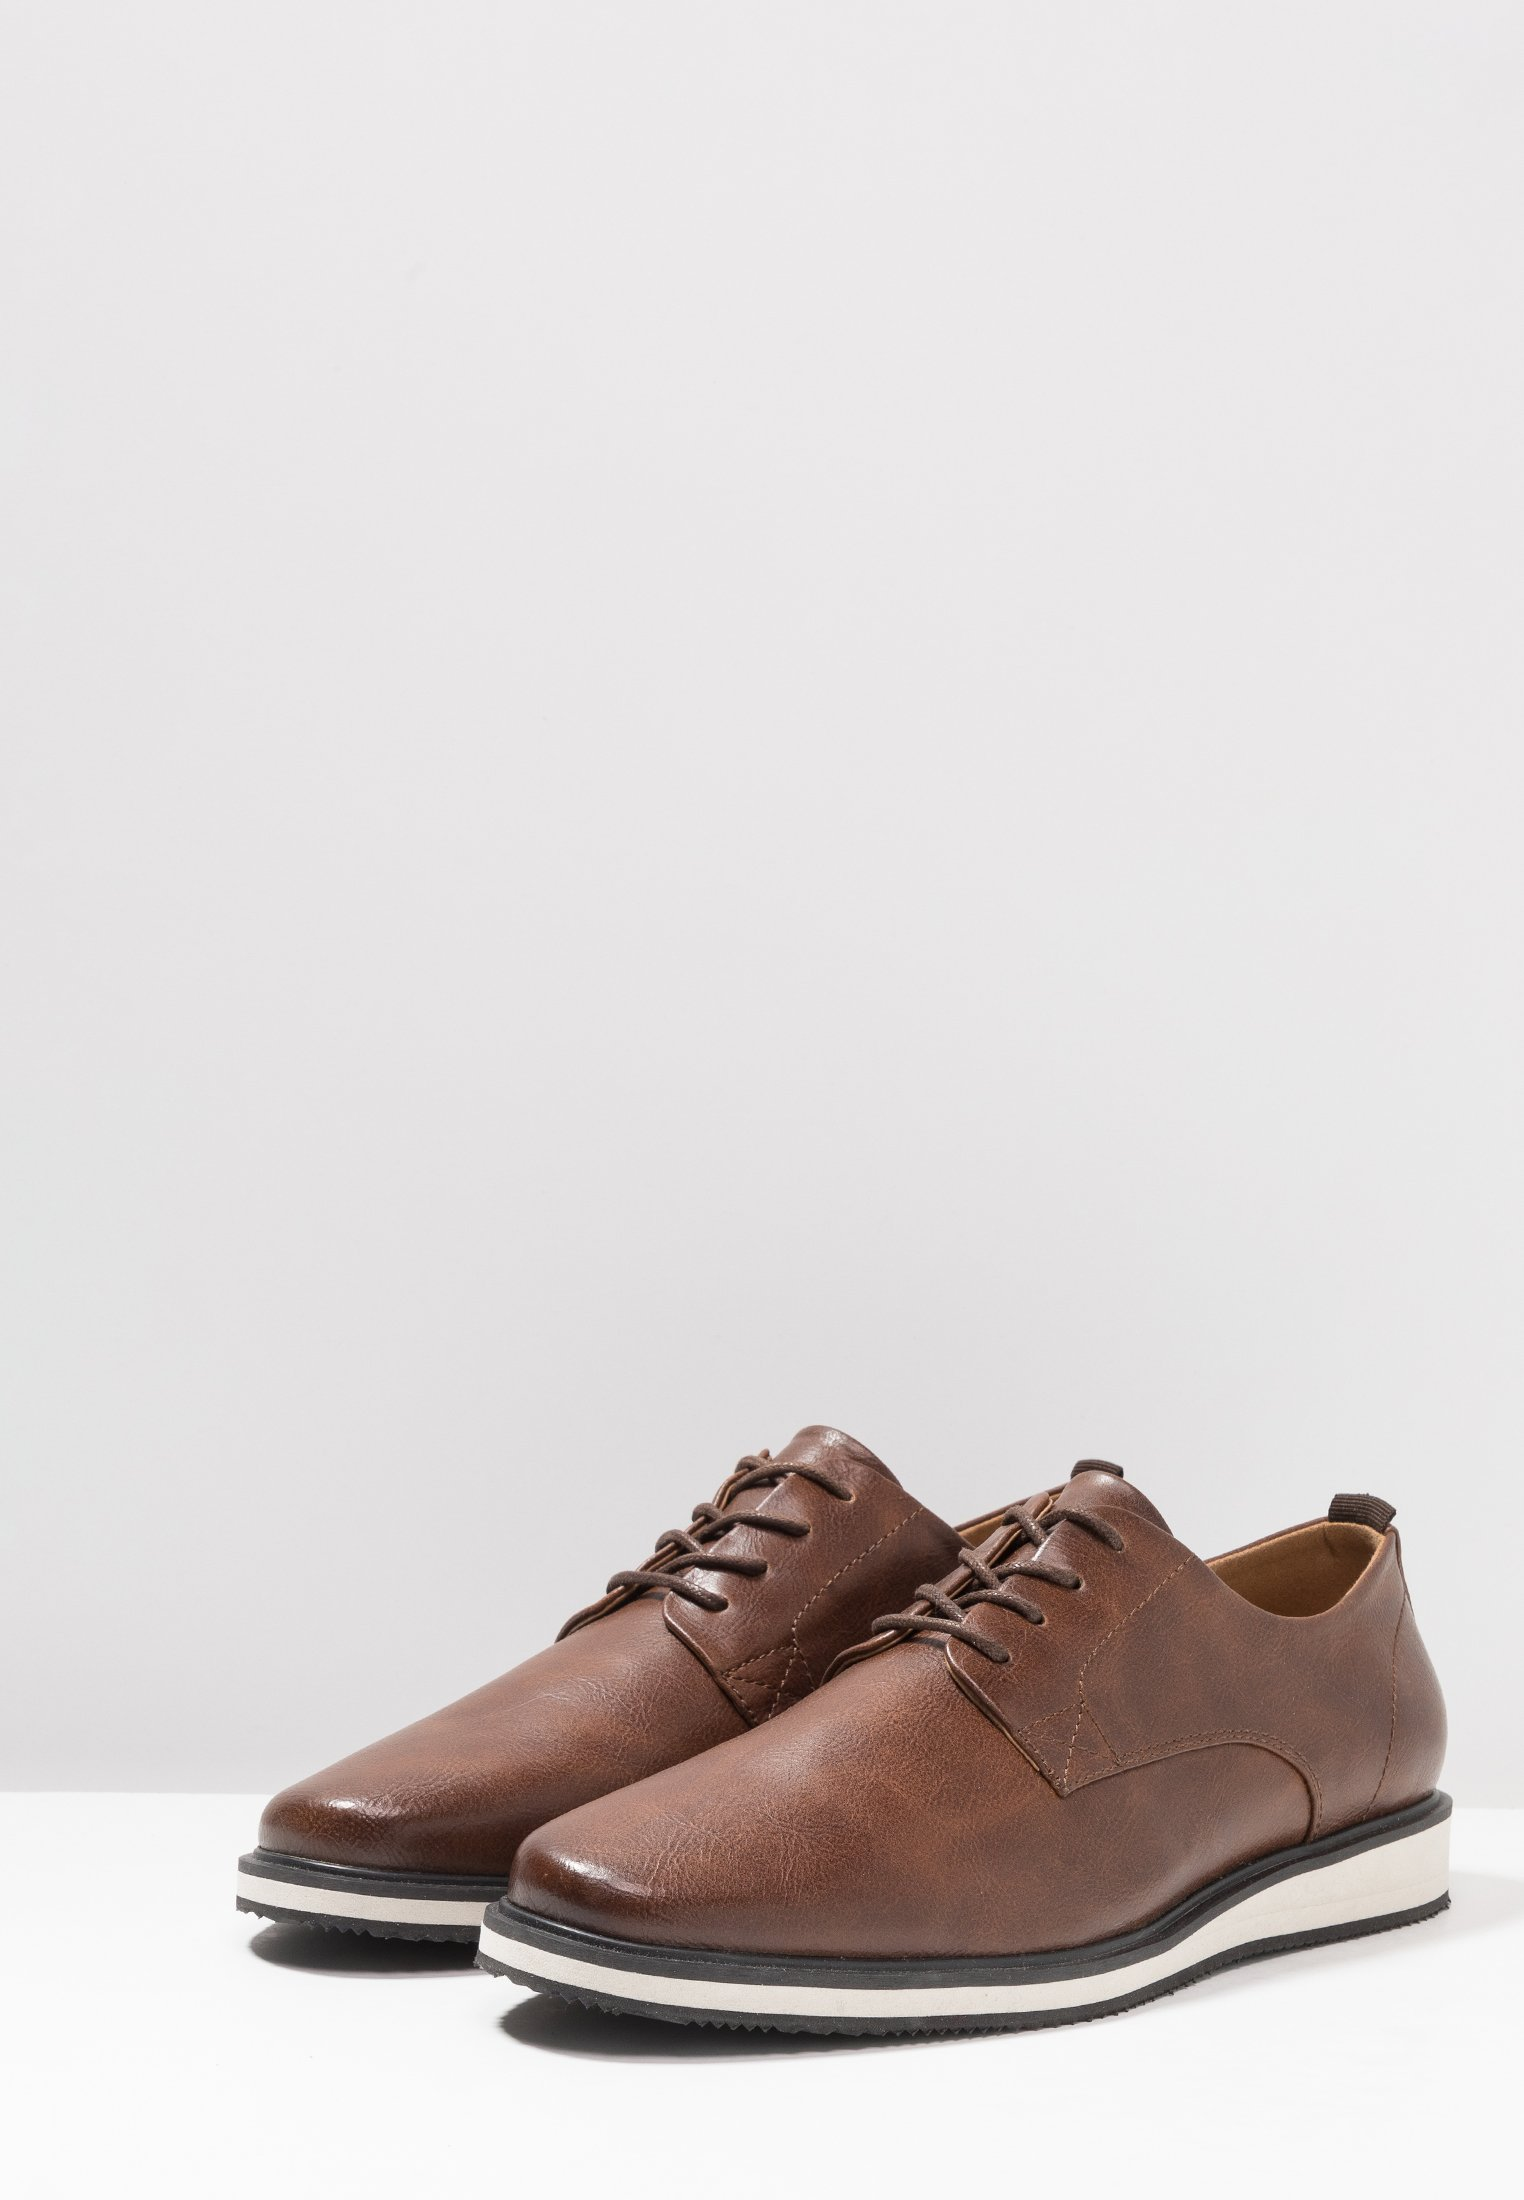 Zalando Chaussures LacetsBrown Essentials À N8wOXn0Pk